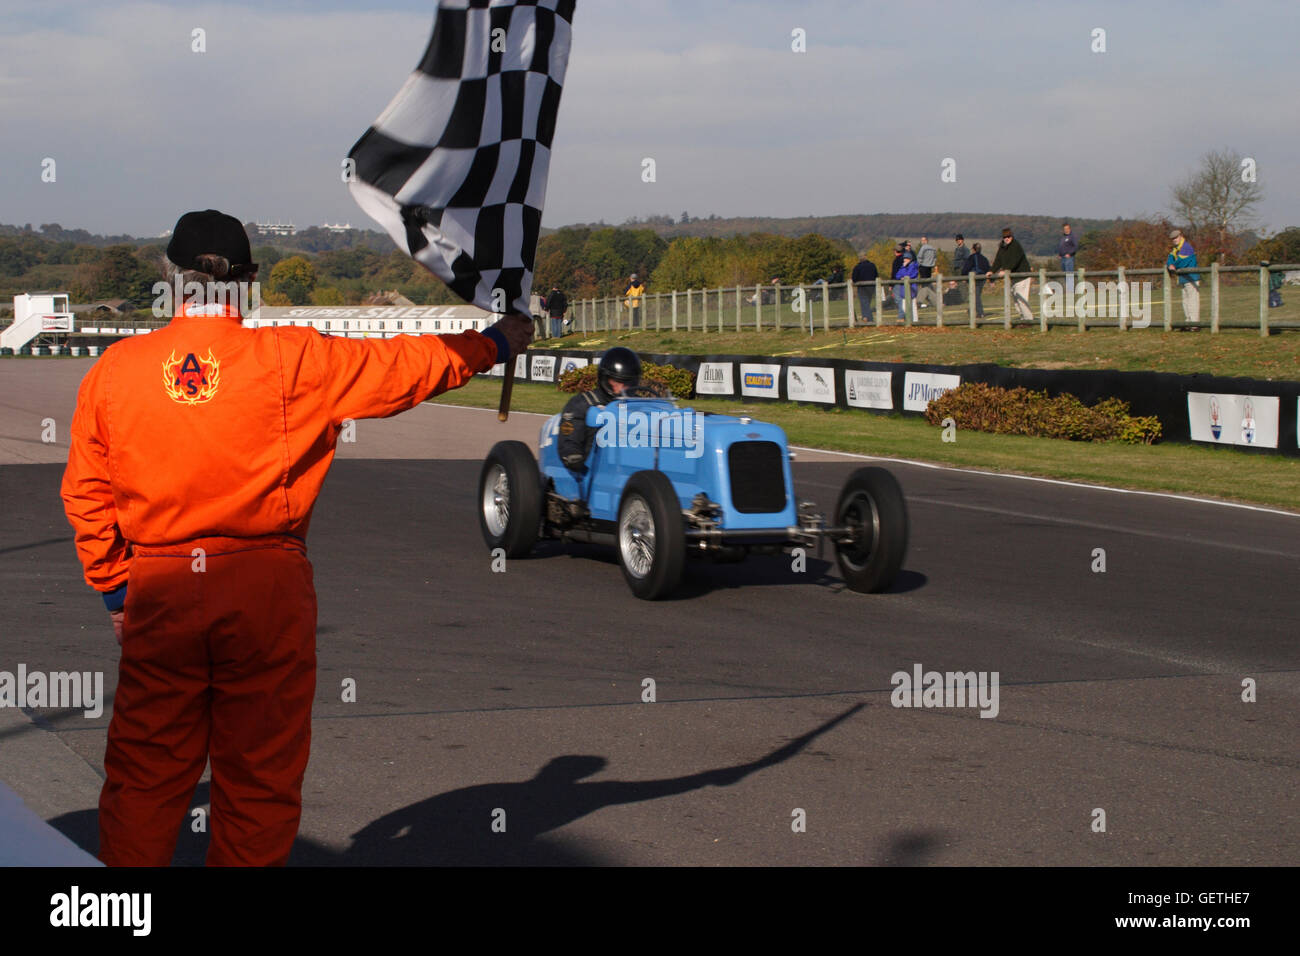 Race Cars Finish Line Stock Photos Pinewood Derby Lamps Crossing The At A Vintage Sports Car Club Event Goodwood